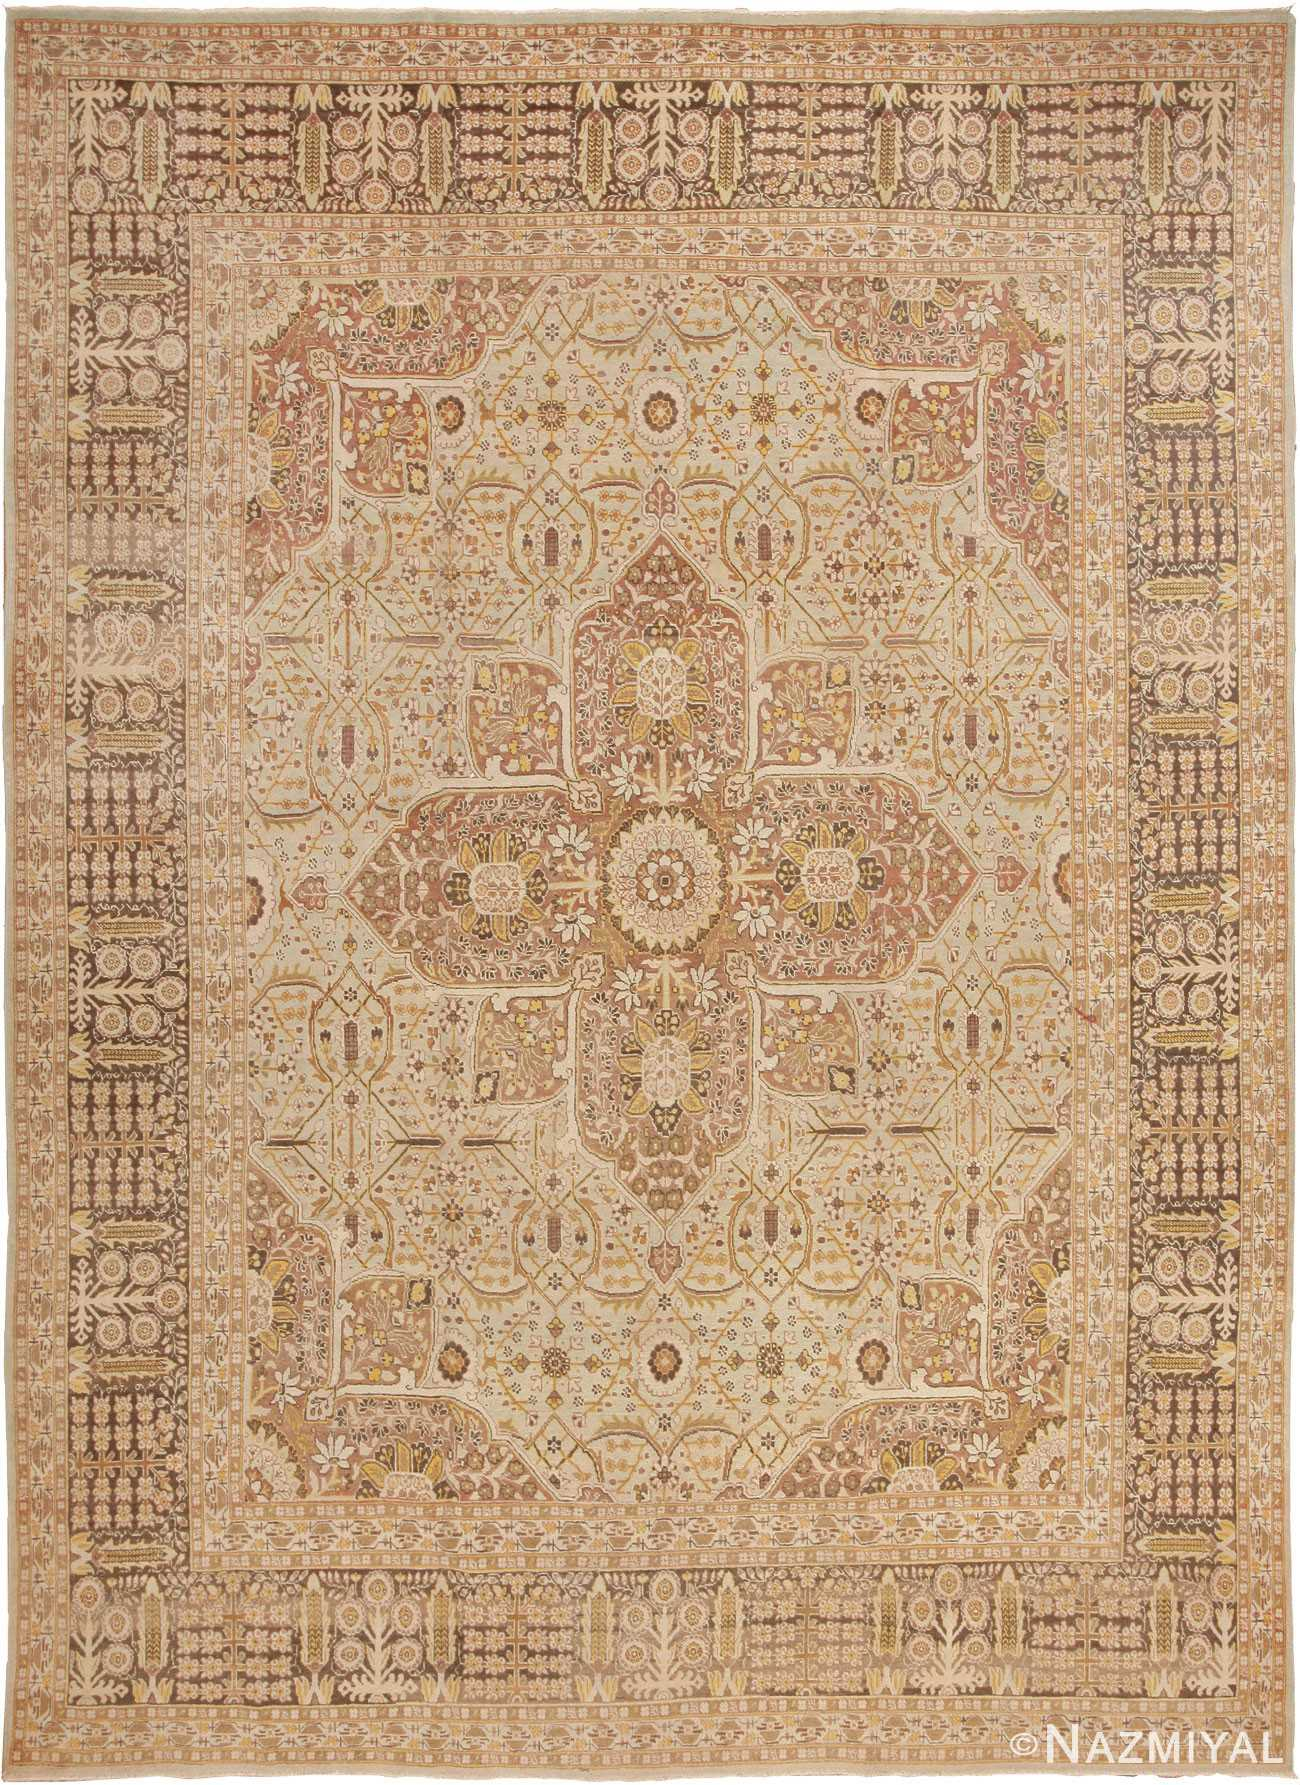 Antique Persian Tabriz Rug 41744 Detail/Large View